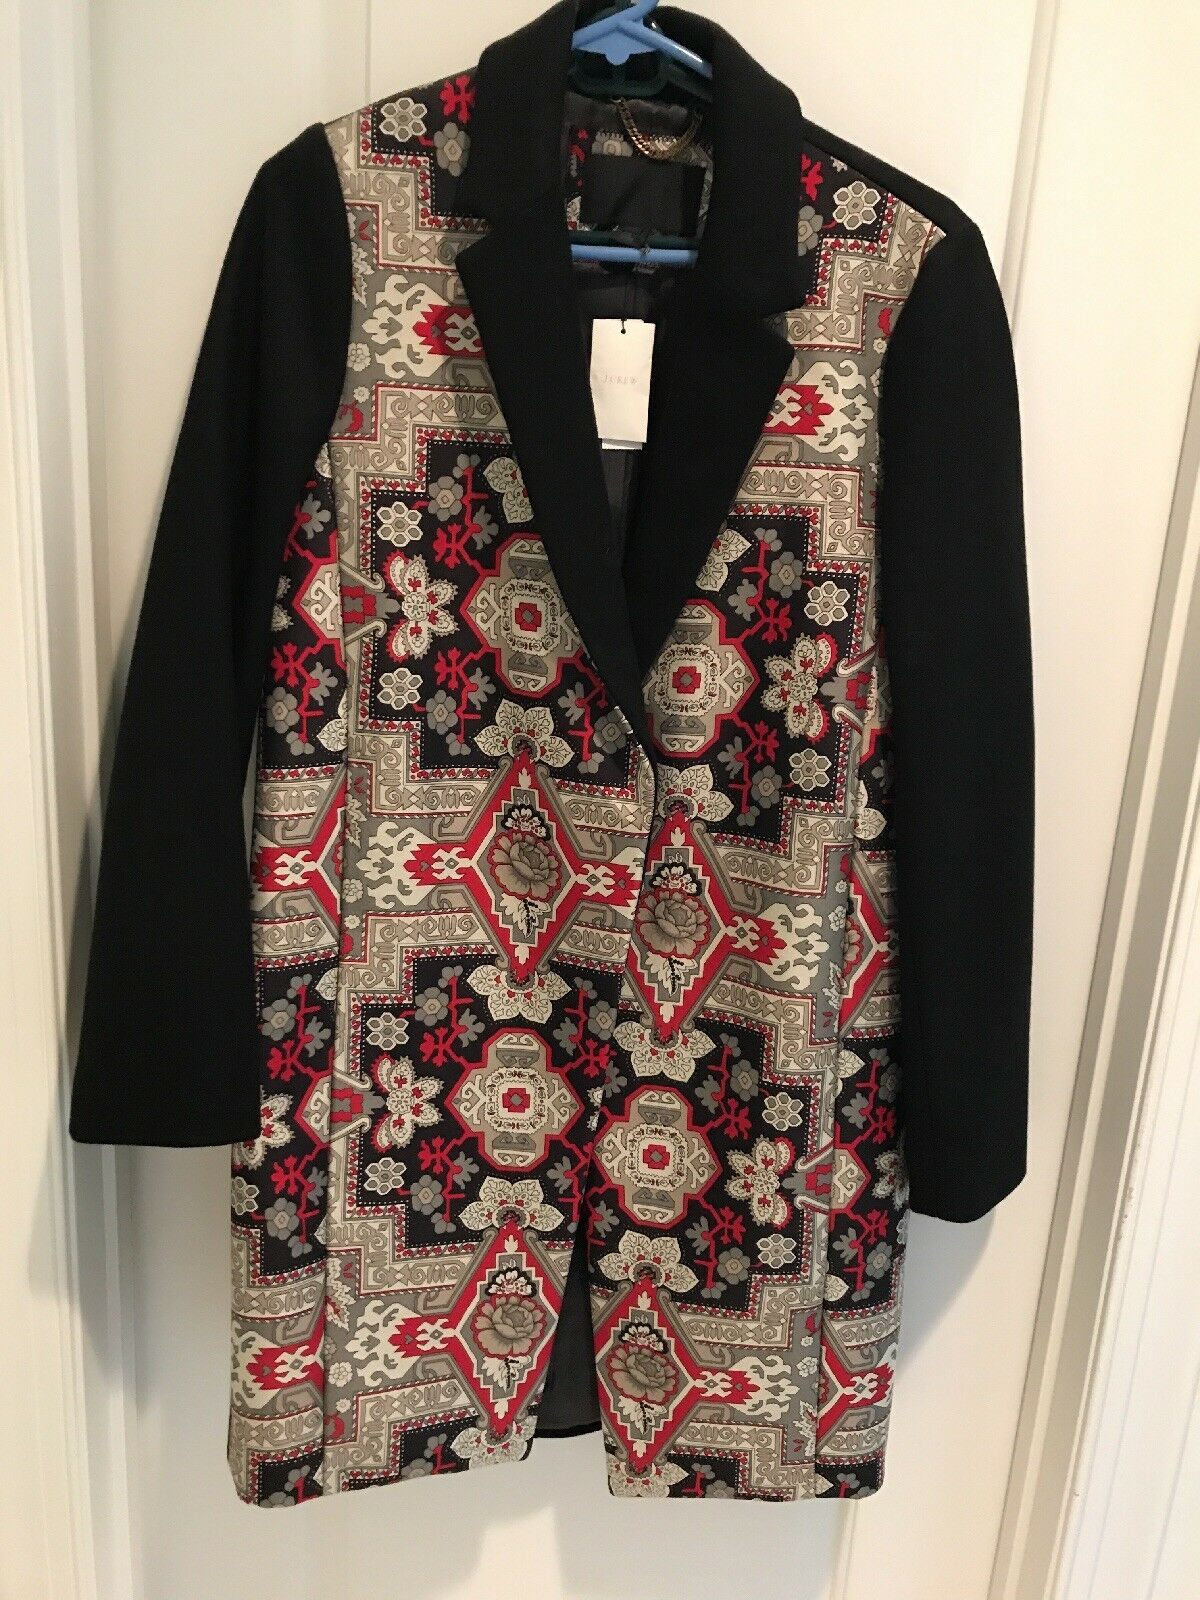 NWT J.CREW COLLECTION TOPCOAT IN TAPESTRY PRINT SIZE 10. FINAL PRICE NO OFFERS